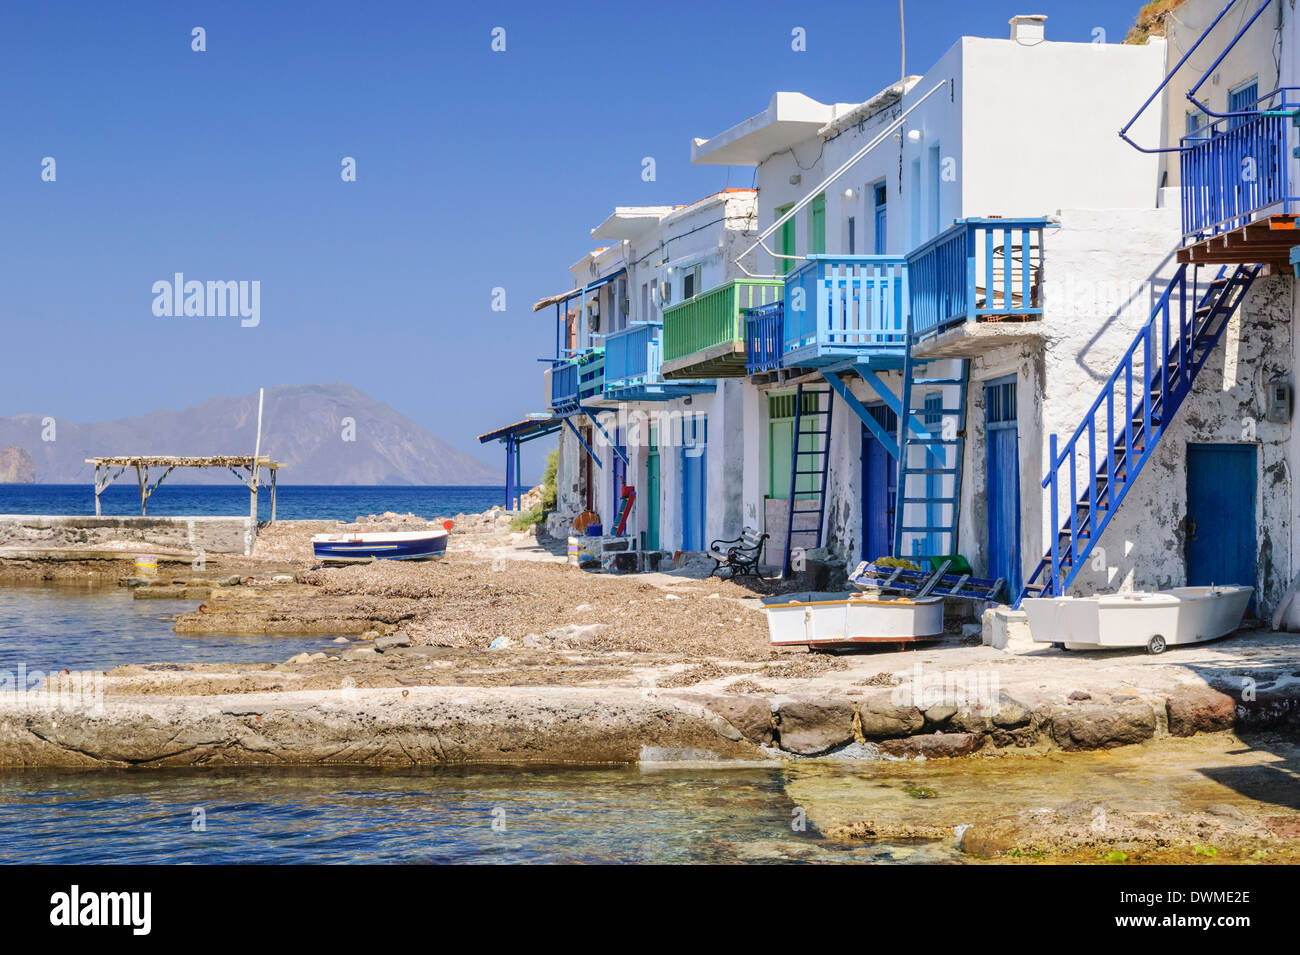 Colourful Syrmata in the fisherman's village of Klima on Milos Island, Cyclades, Greece - Stock Image